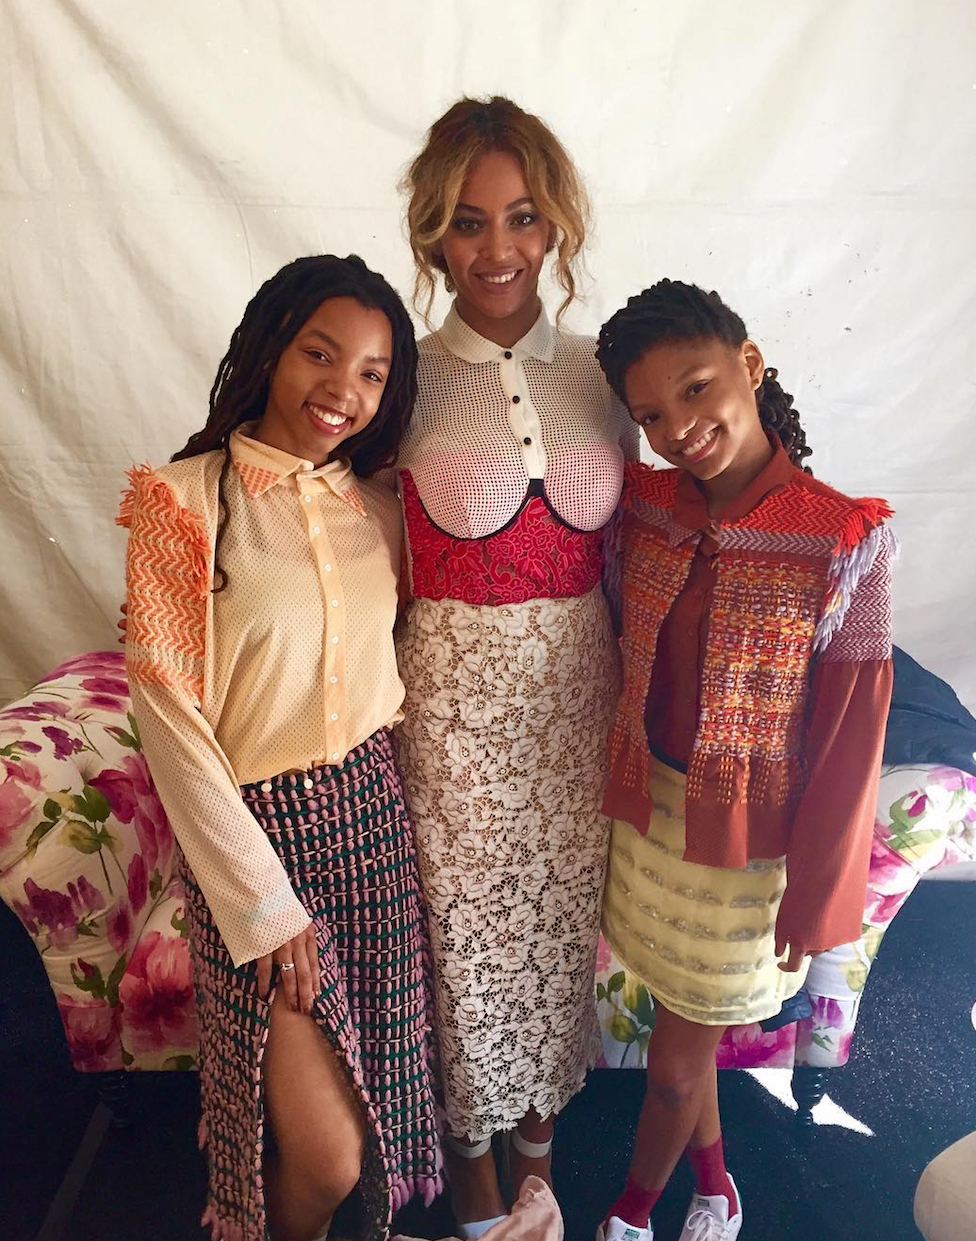 Beyoncé, Jay Z, and Blue Ivy Attend the White House Easter Egg Roll